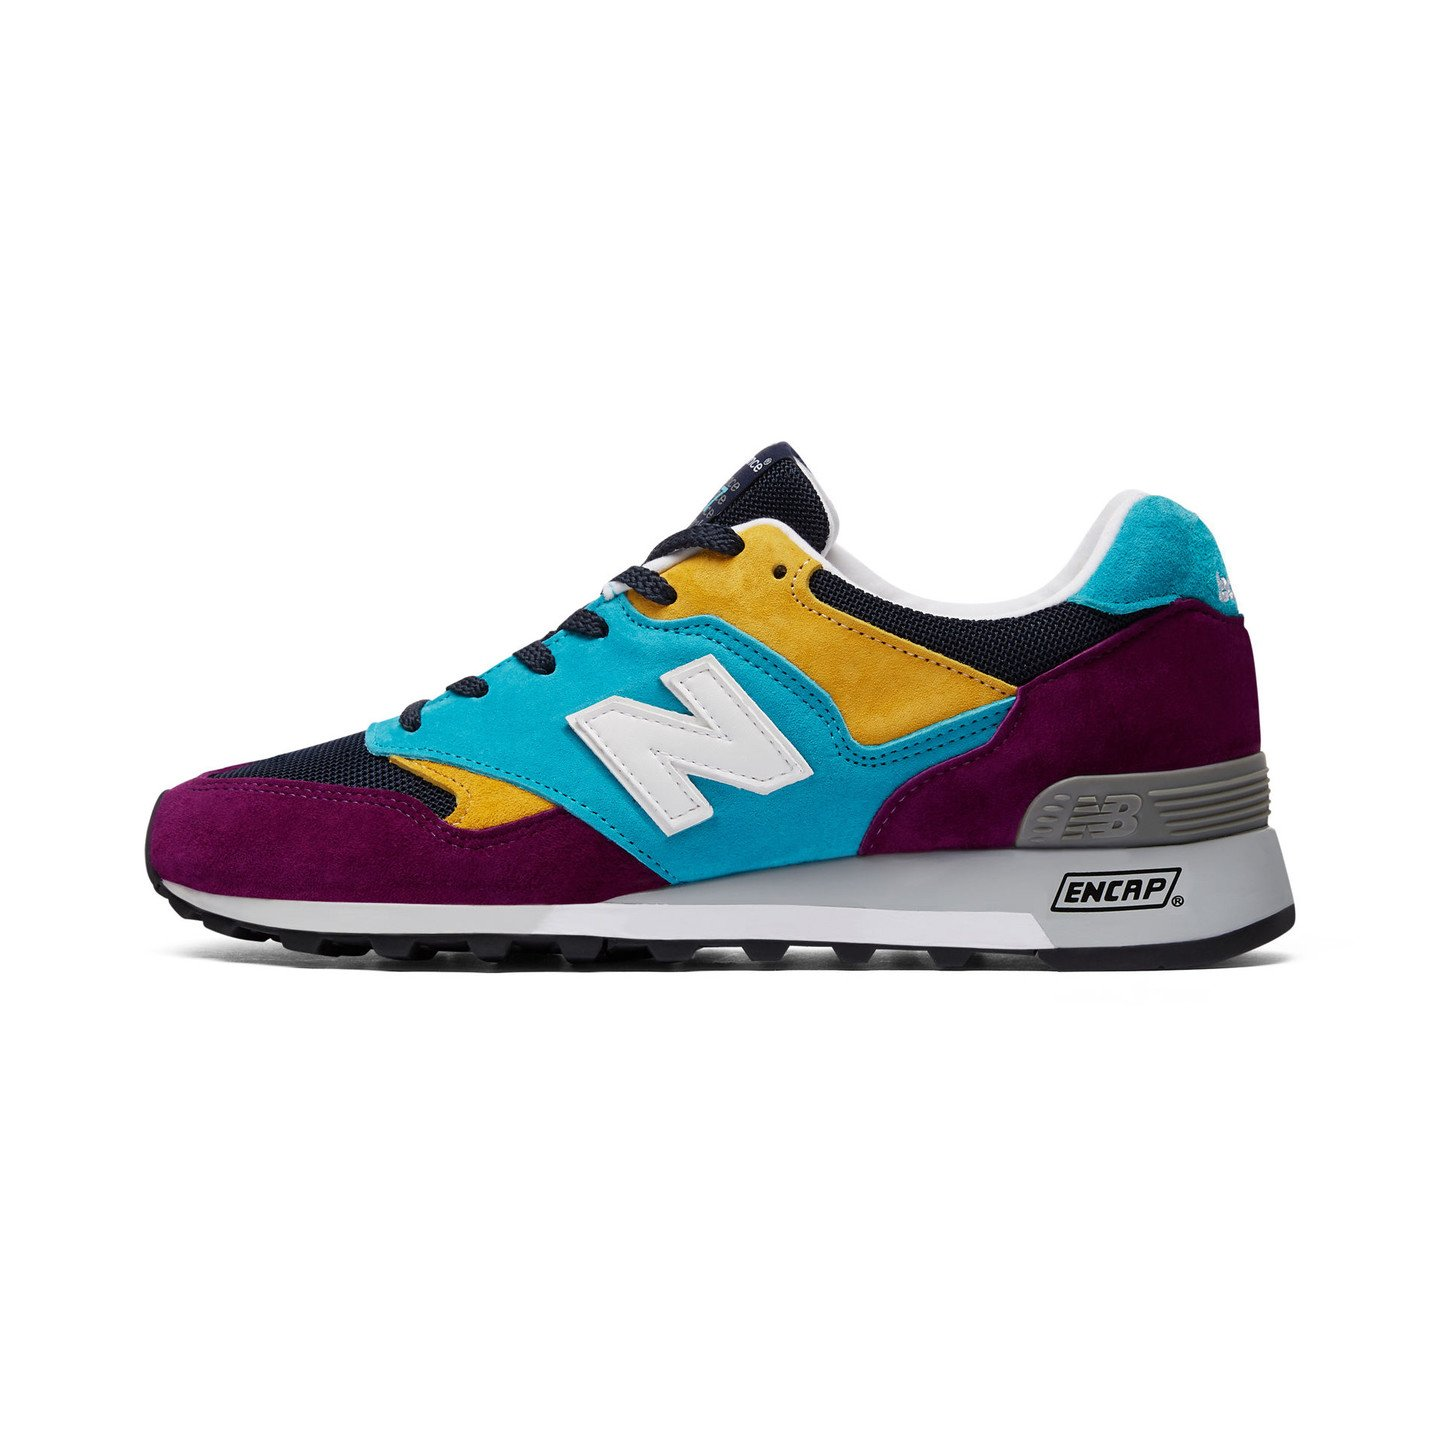 New Balance M577 LP - Made in England Purple / Blue / Yellow M577LP